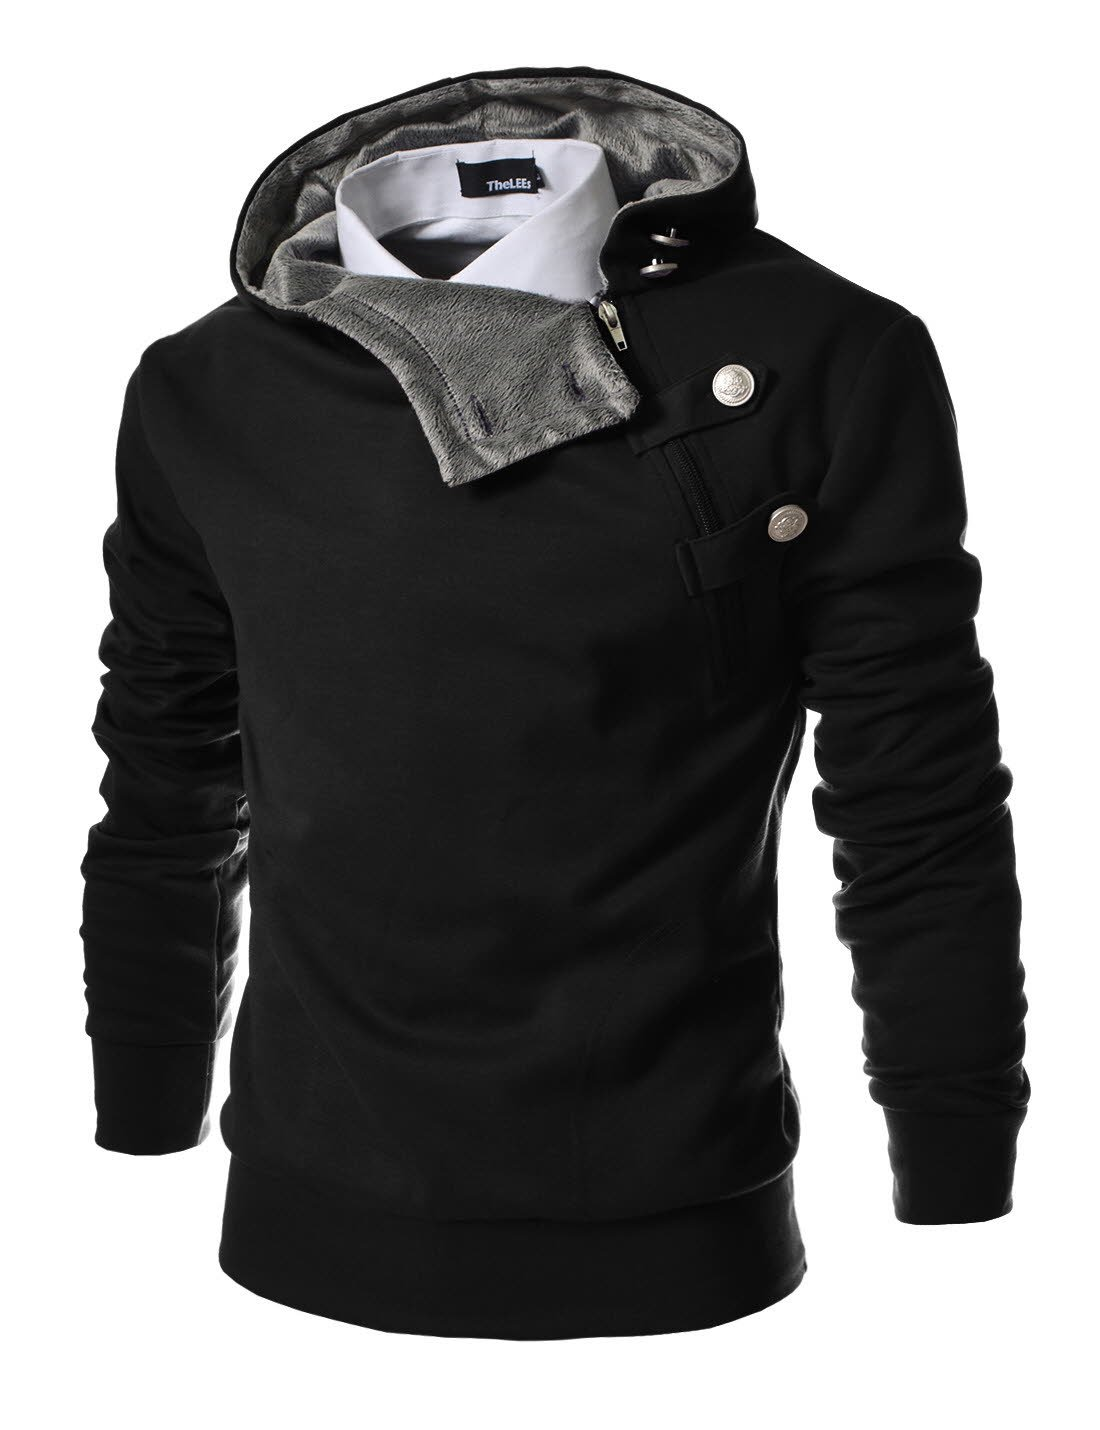 TheLees (R4BH) Mens Casual Luxury Buckle Hoodie Slim Cotton Sweatshirts BLACK US XS(Tag size M) by TheLees (Image #2)